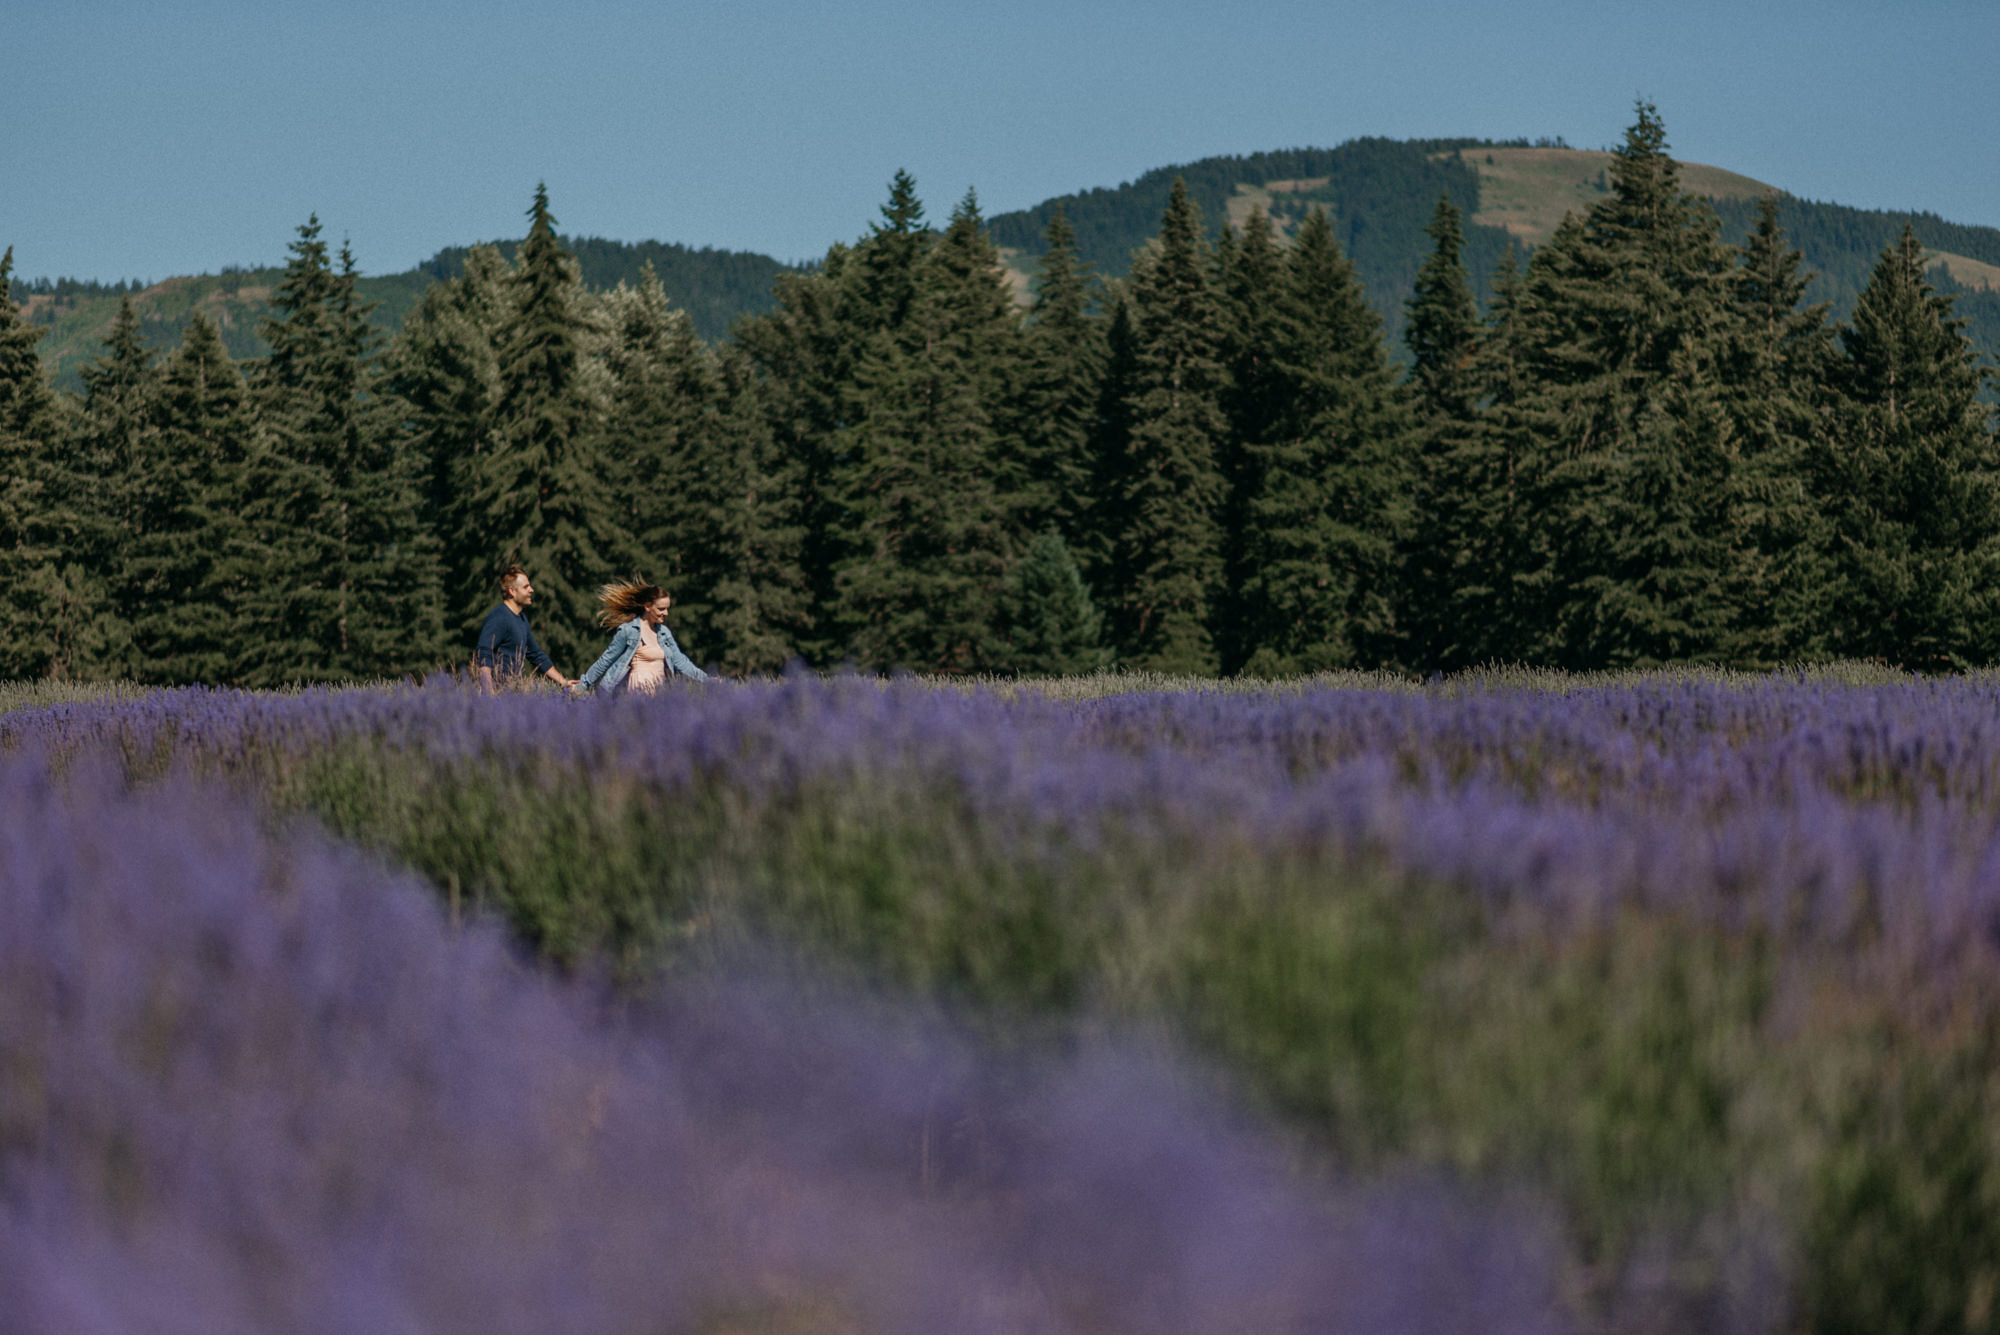 22-Mt-hood-lavender-farms-engagment-couple-summer-7569.jpg